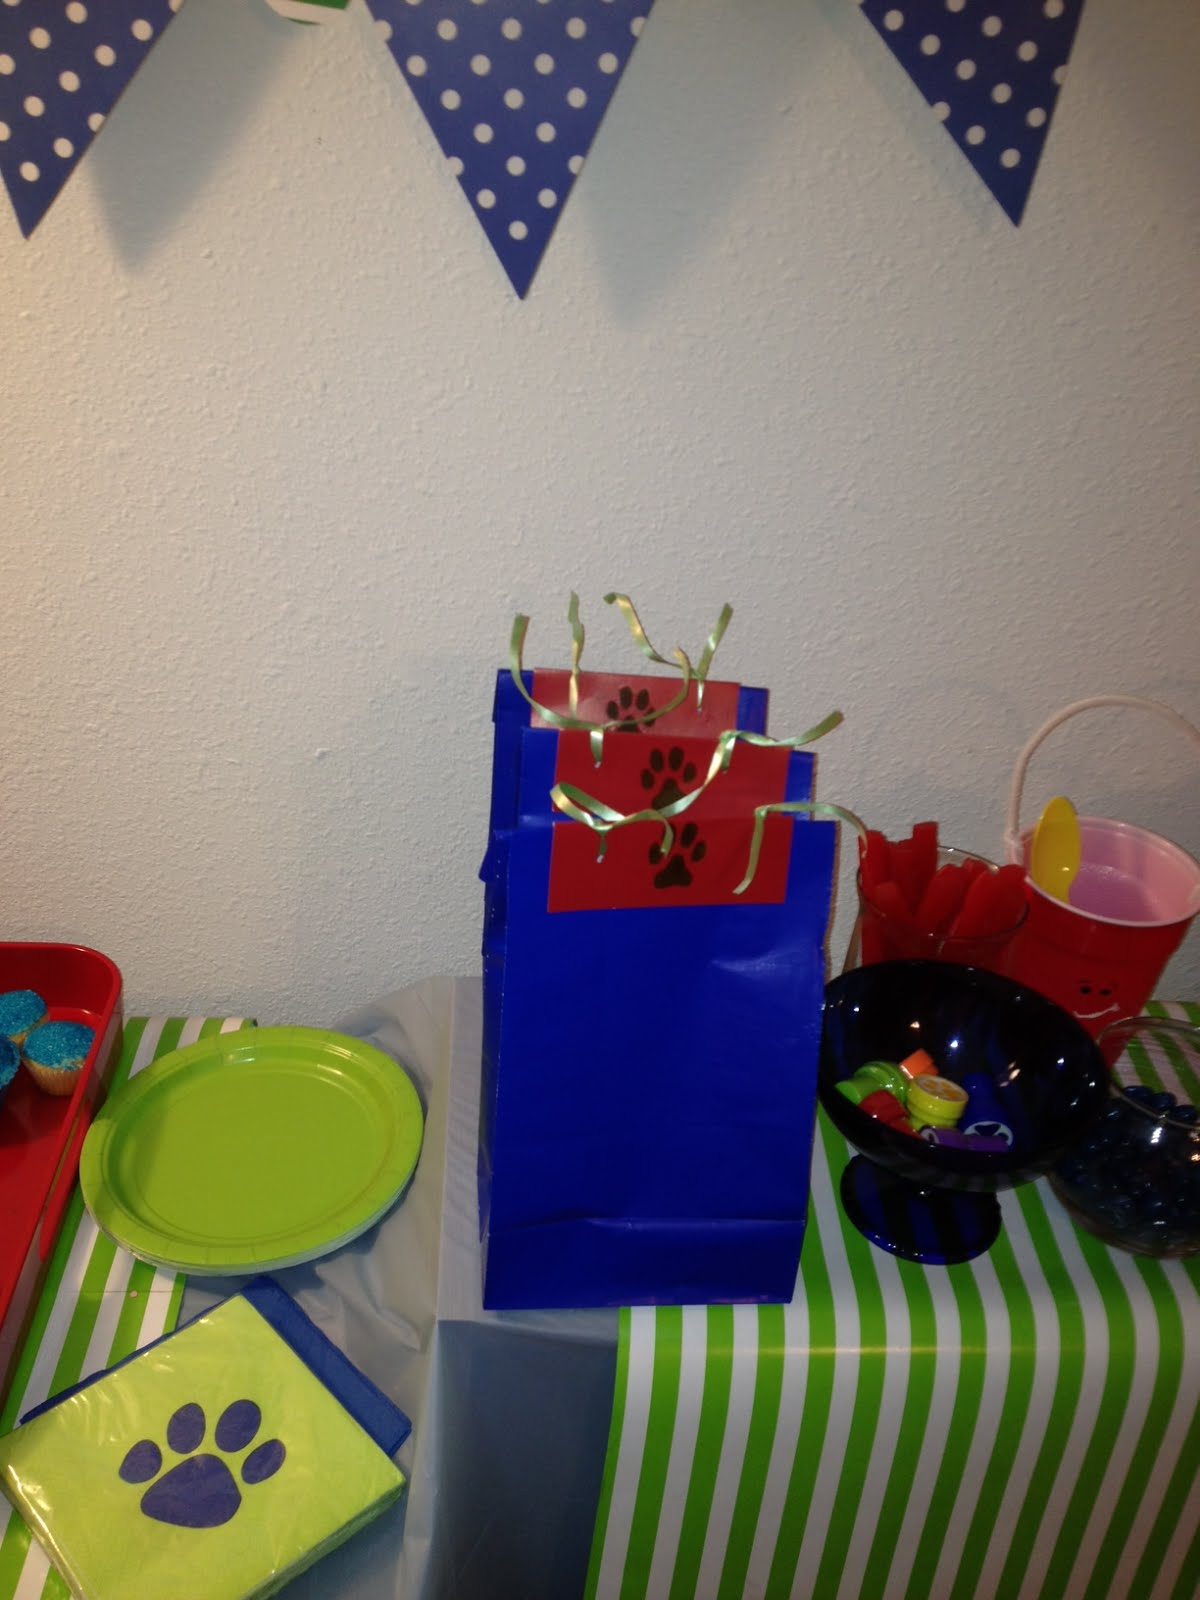 Blues Clues Budget Birthday Party